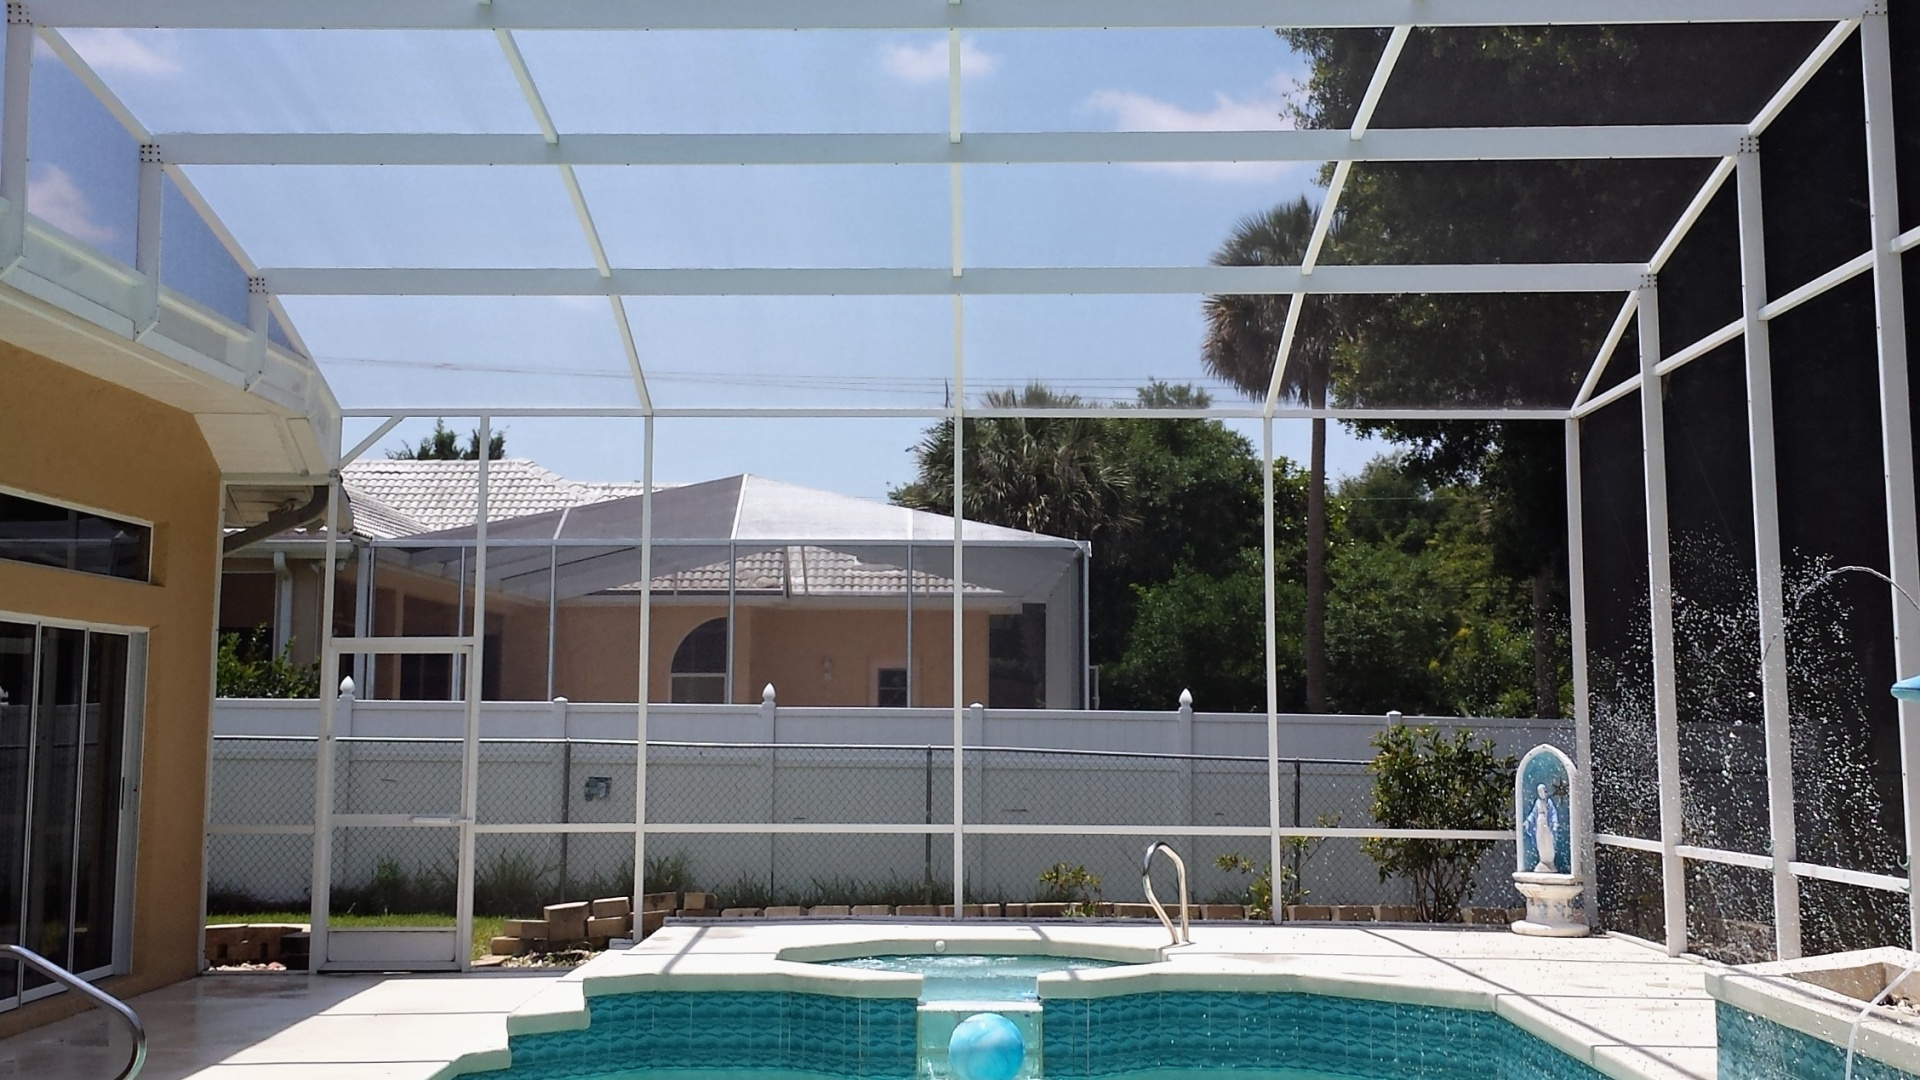 pool-screen-repair-port-orange-14-1080p.jpg